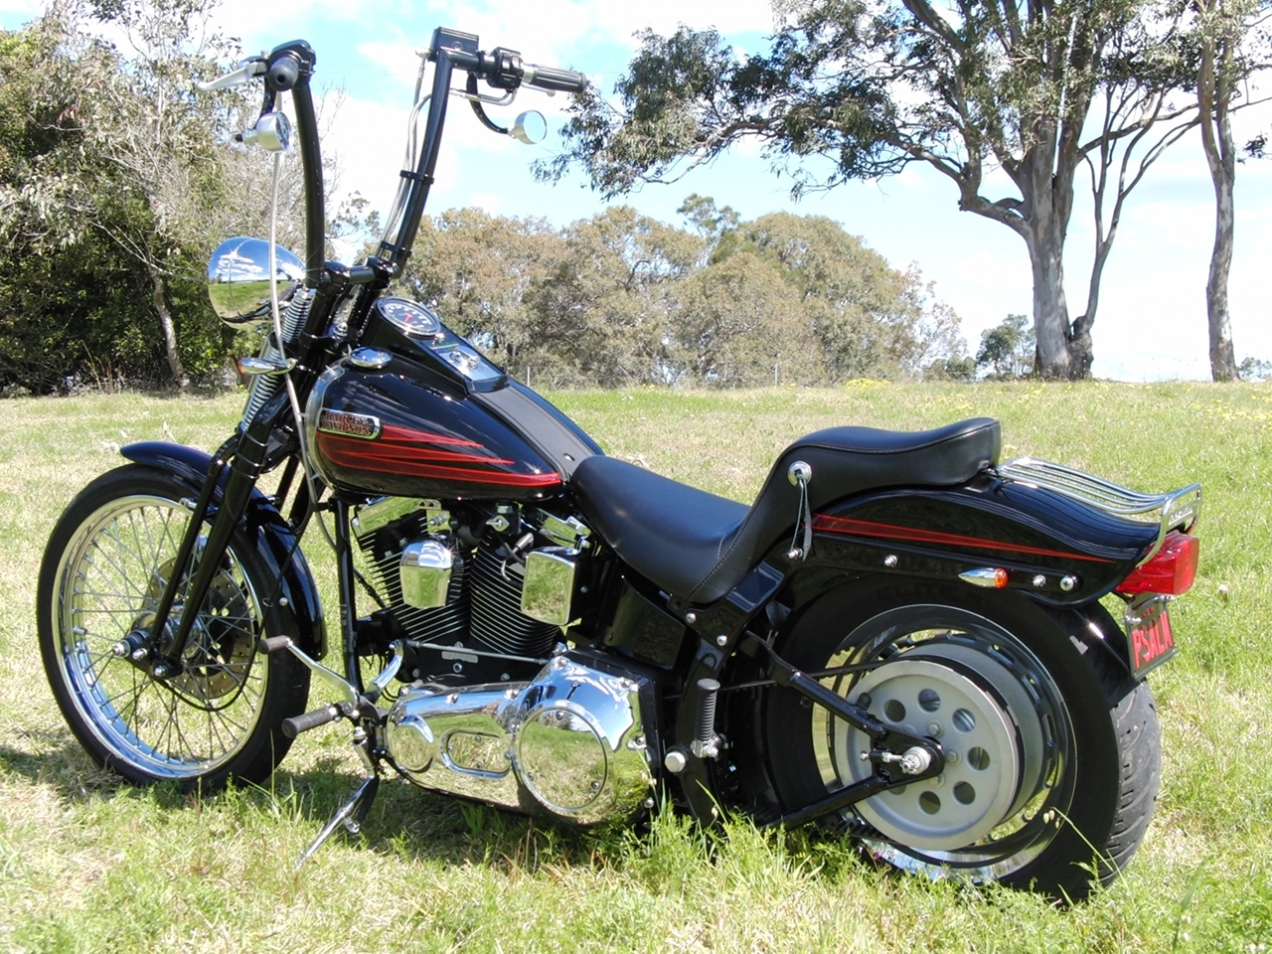 harley-davidson-softail-springer-1995-bad-boy-FXSTSB-evolution-1340-carlini-evil-apehangers-lepera-le-pera-cherokee-seat-jeremiah-watt-slotted-concho-joker-machine-mirrors-psalmistice_CIMG2827